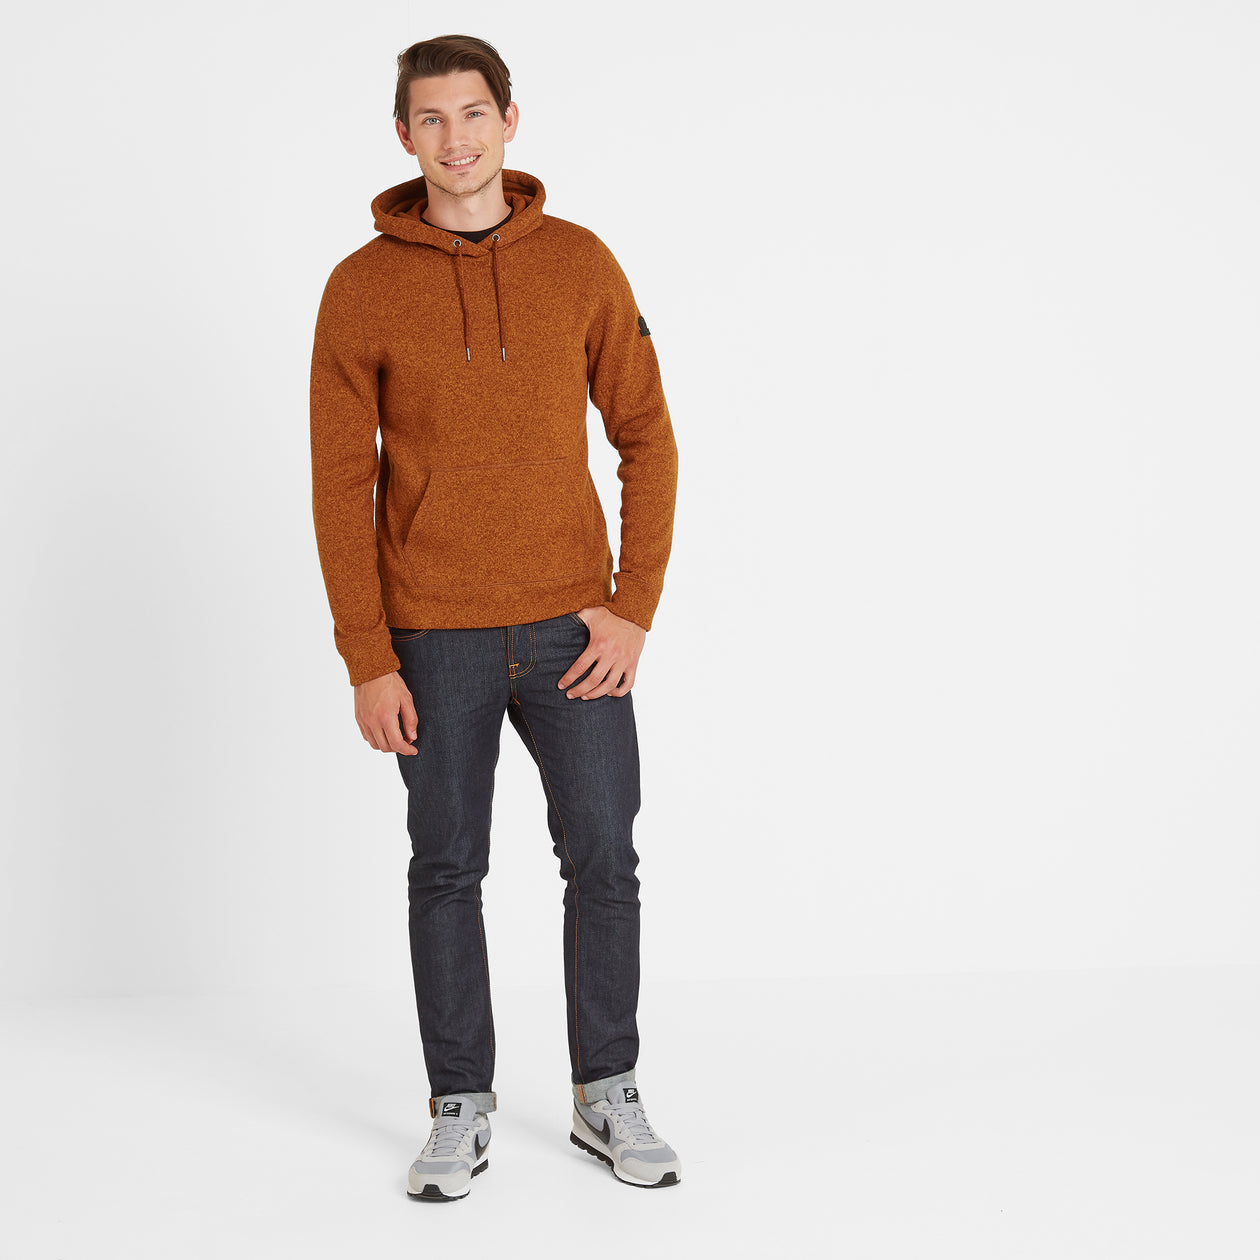 Chilton Mens Knitlook Fleece Hoody - Amber Marl image 4